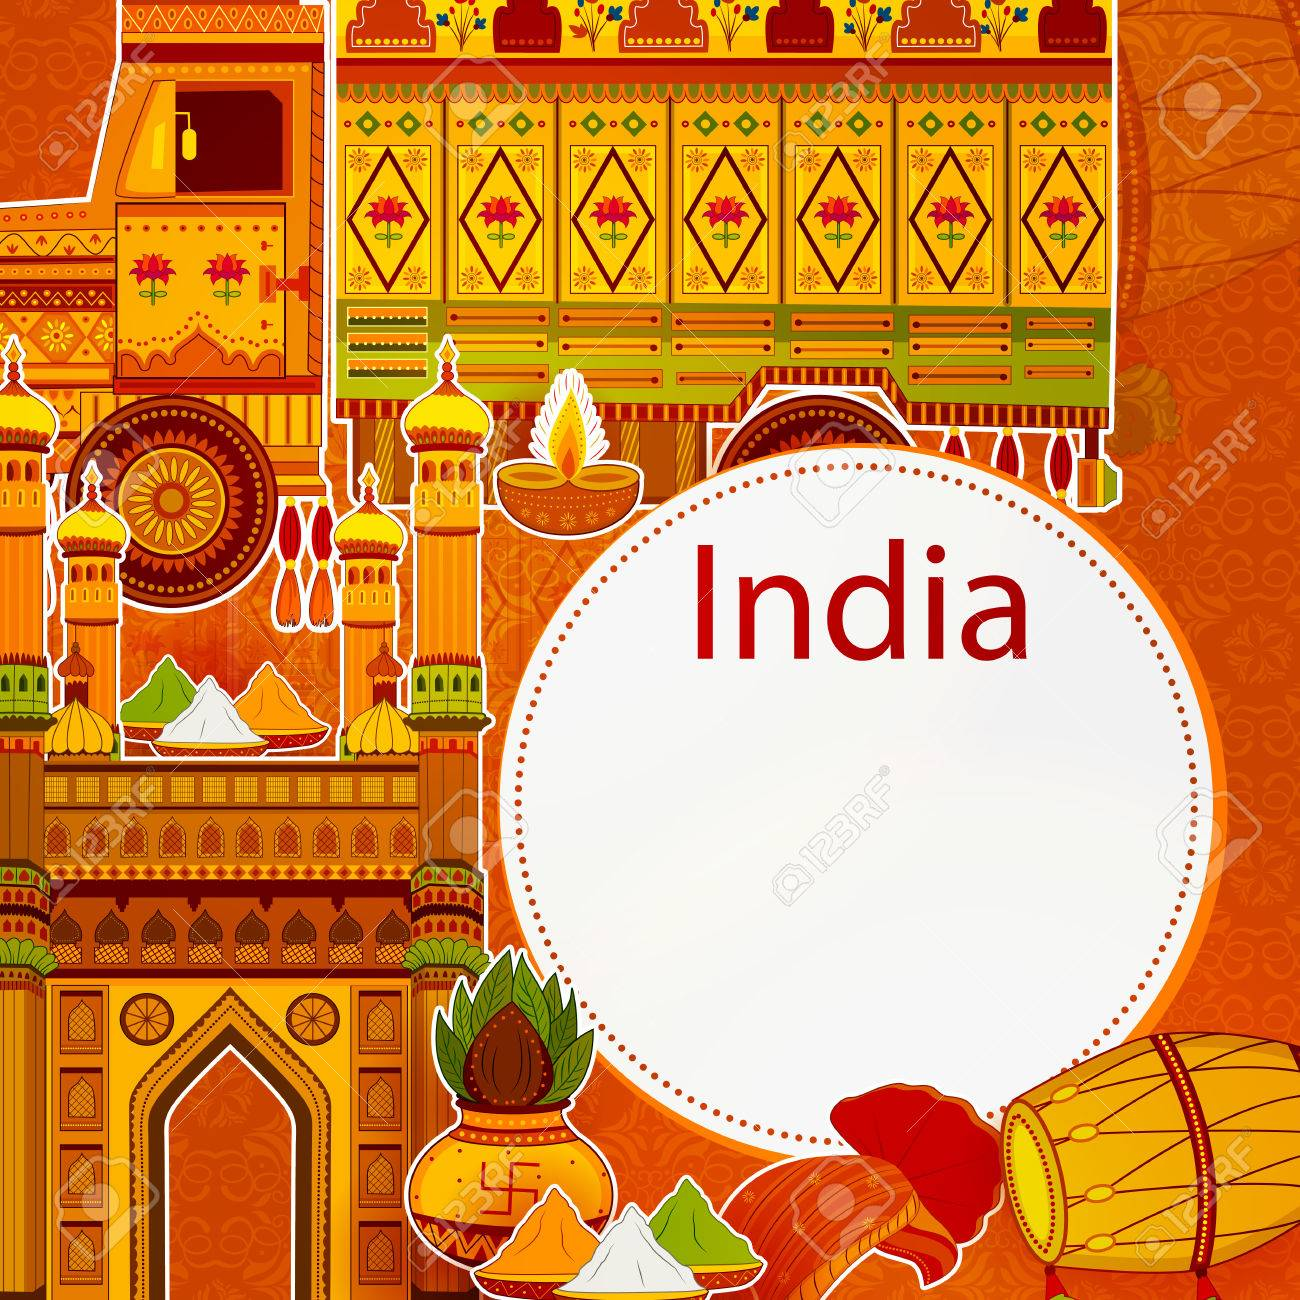 Incredible India Background Depicting Indian Colorful Culture 1300x1300